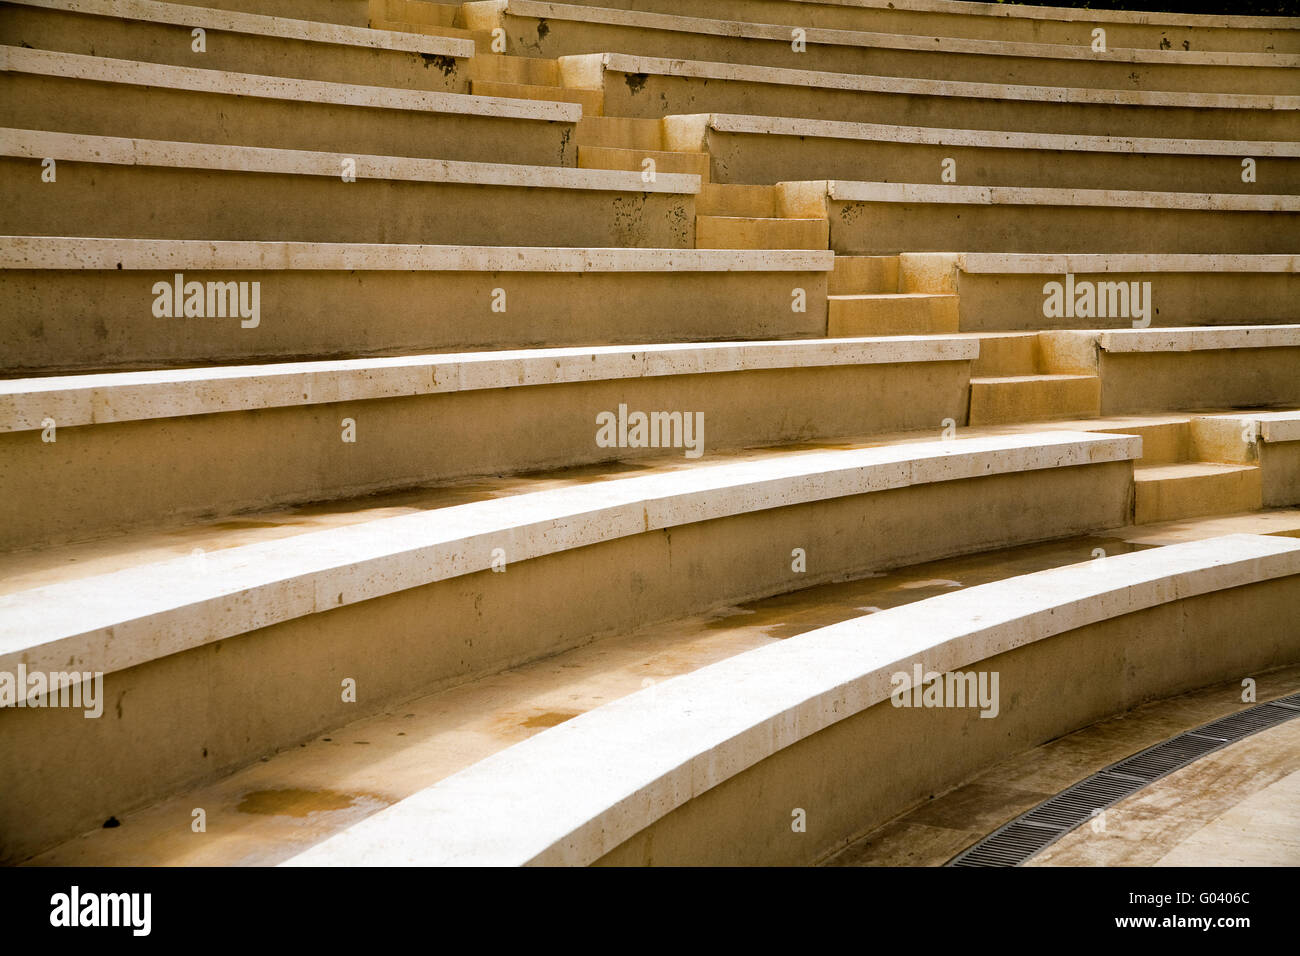 ancient stages and seats from a yellow granit ston - Stock Image